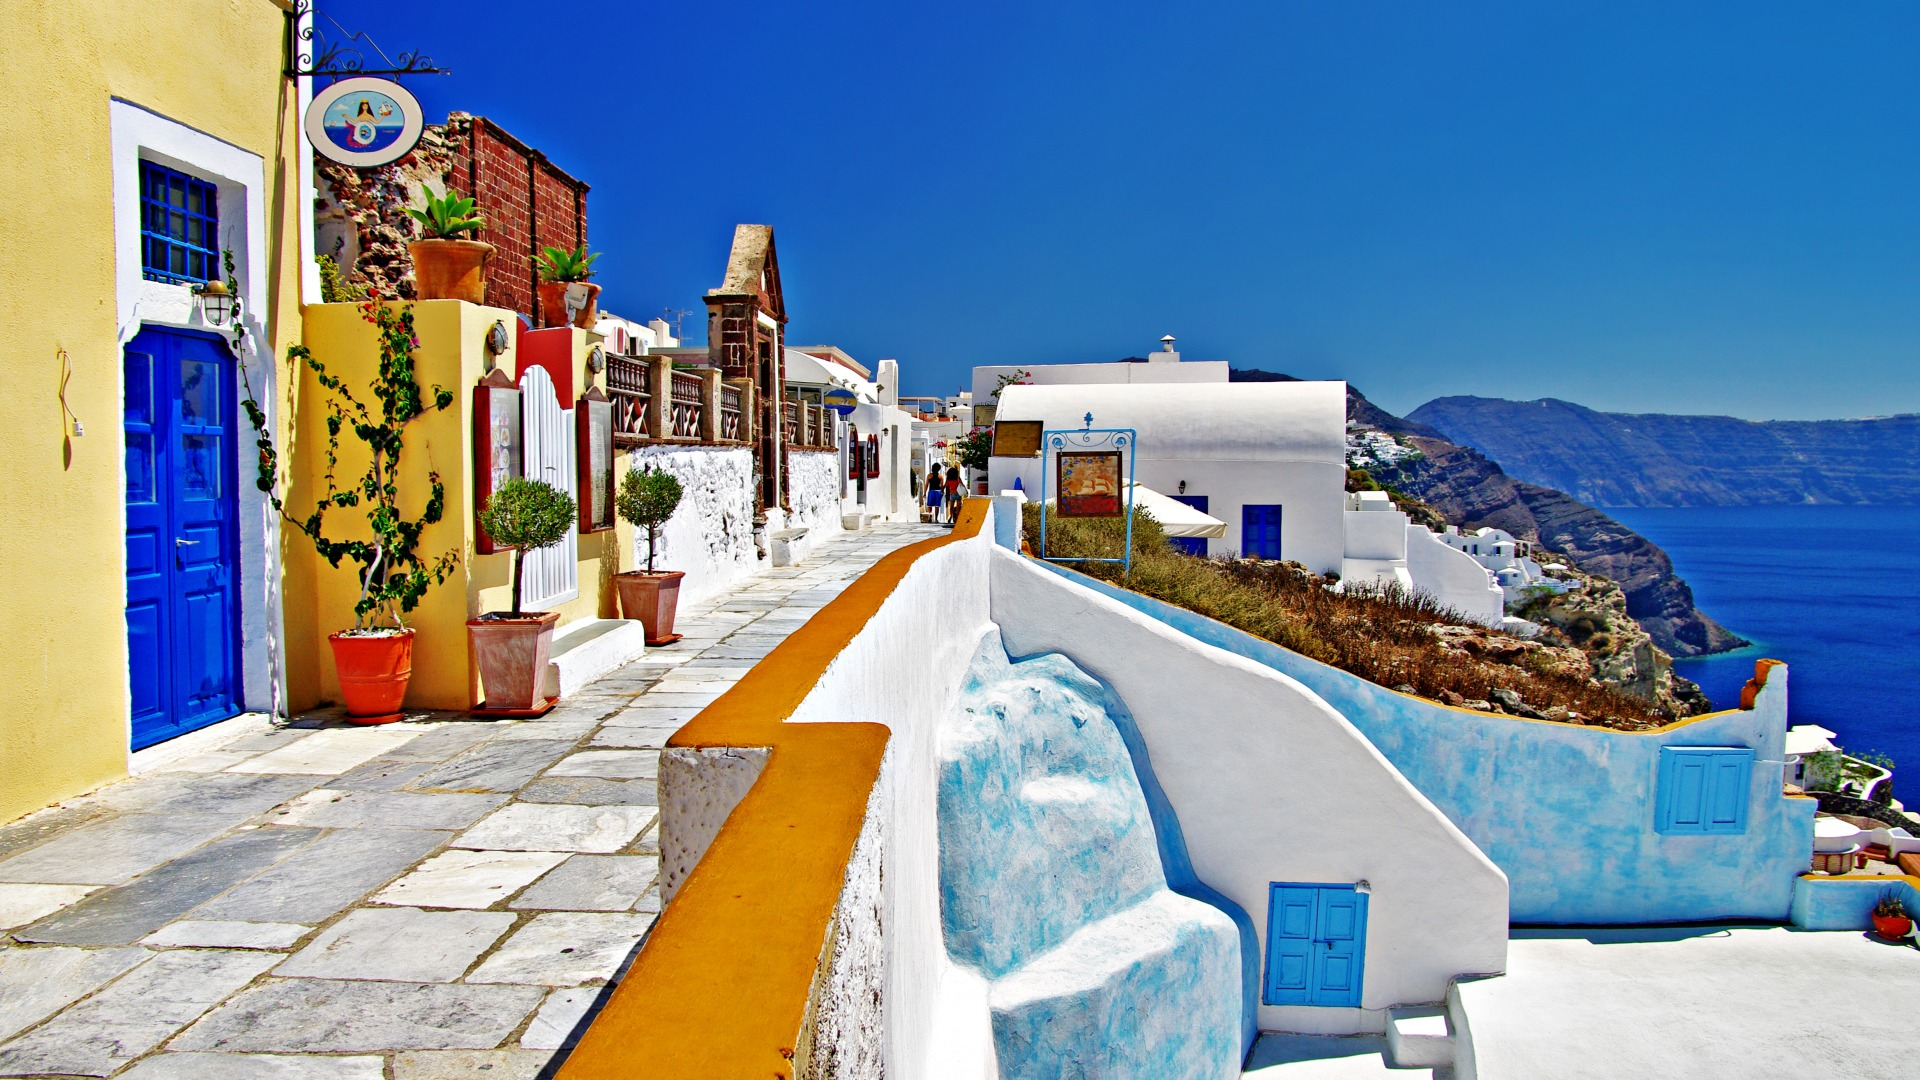 Download-sea-landscape-nature-home-Santorini-Greece-section-Resolution-1920x-wallpaper-wp360210